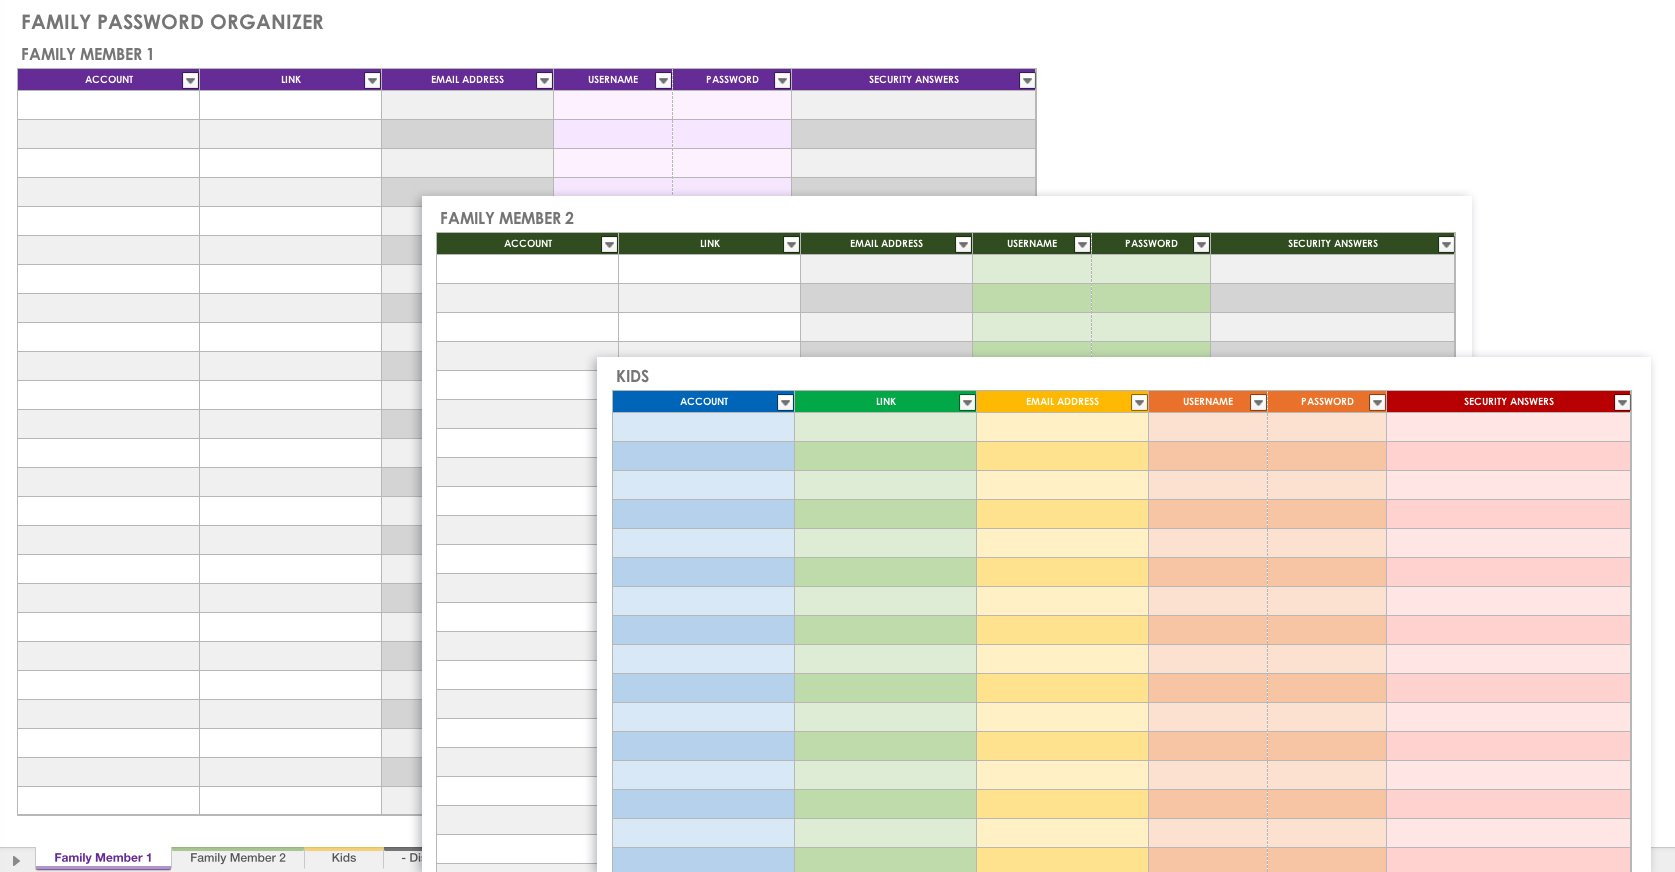 Free Password Templates And Spreadsheets | Smartsheet Throughout Password Spreadsheet Template